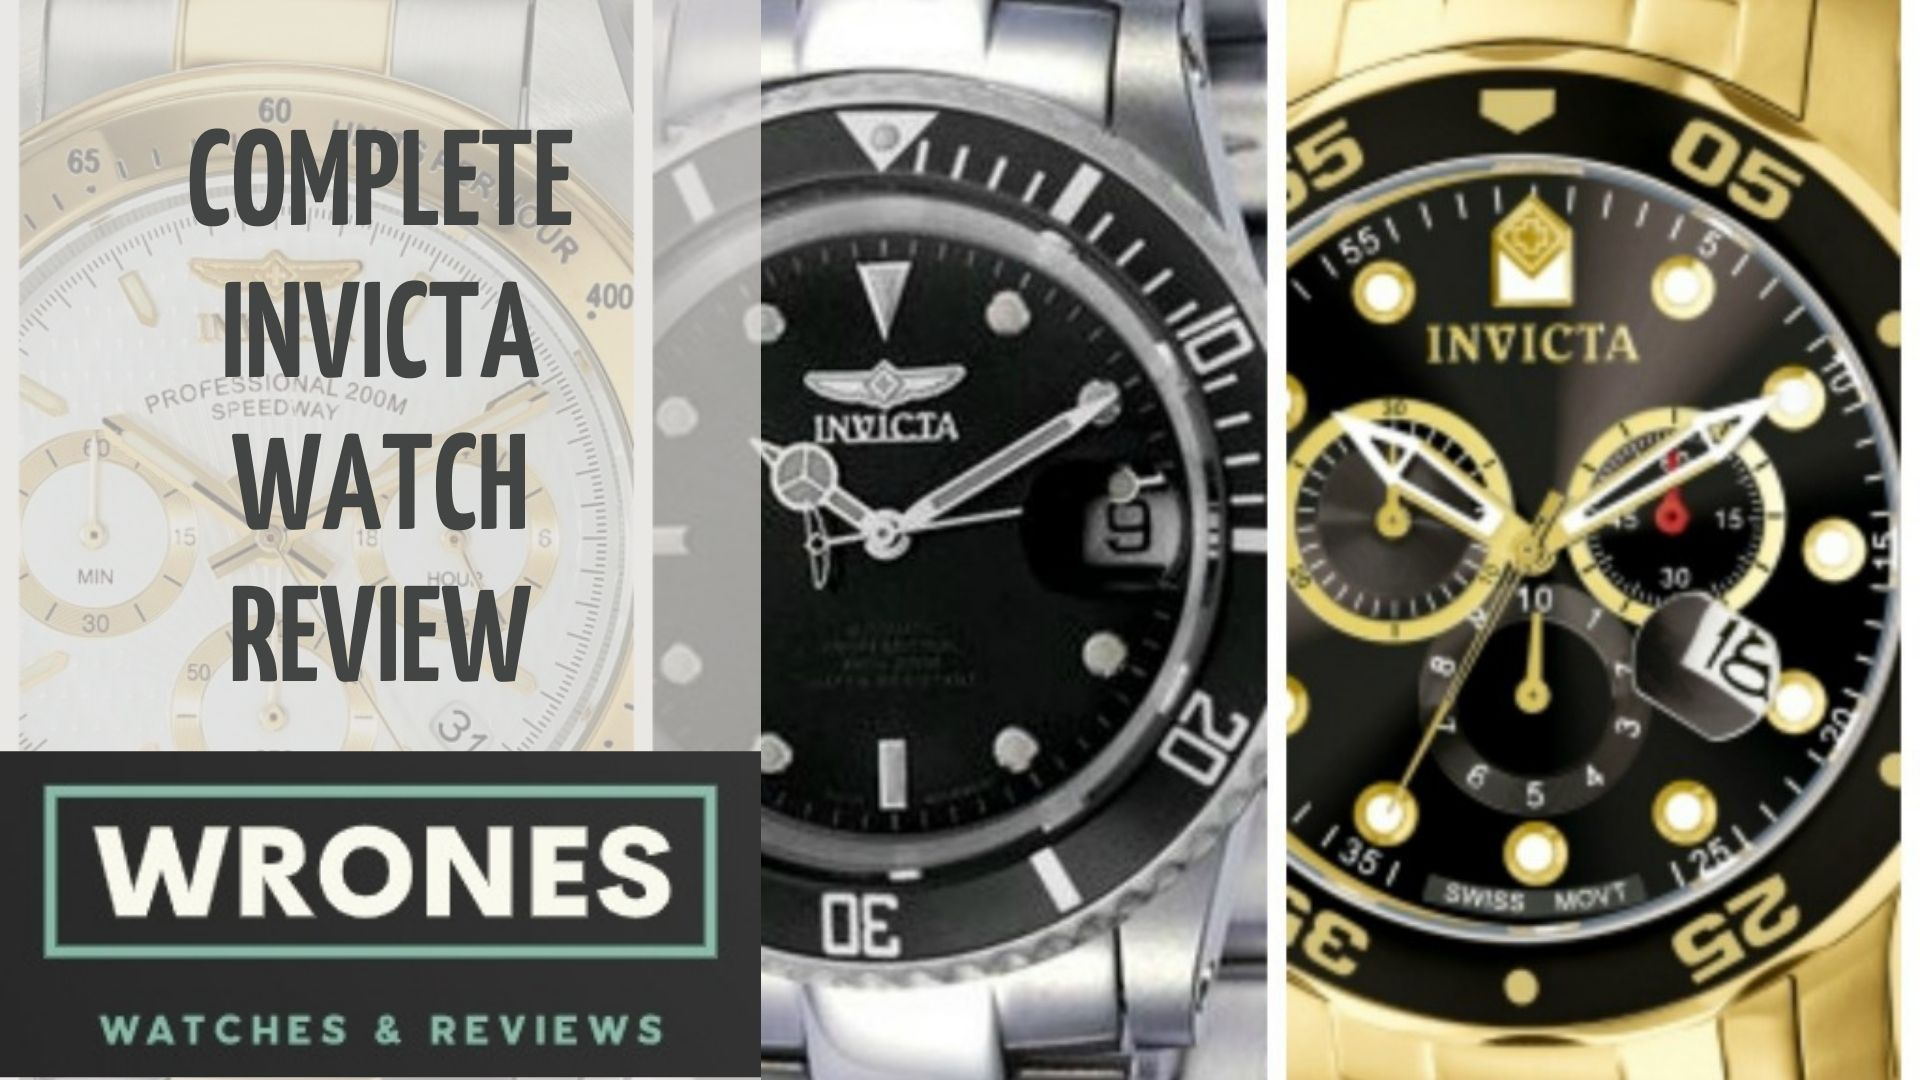 Complete Invicta Watch Review wrones